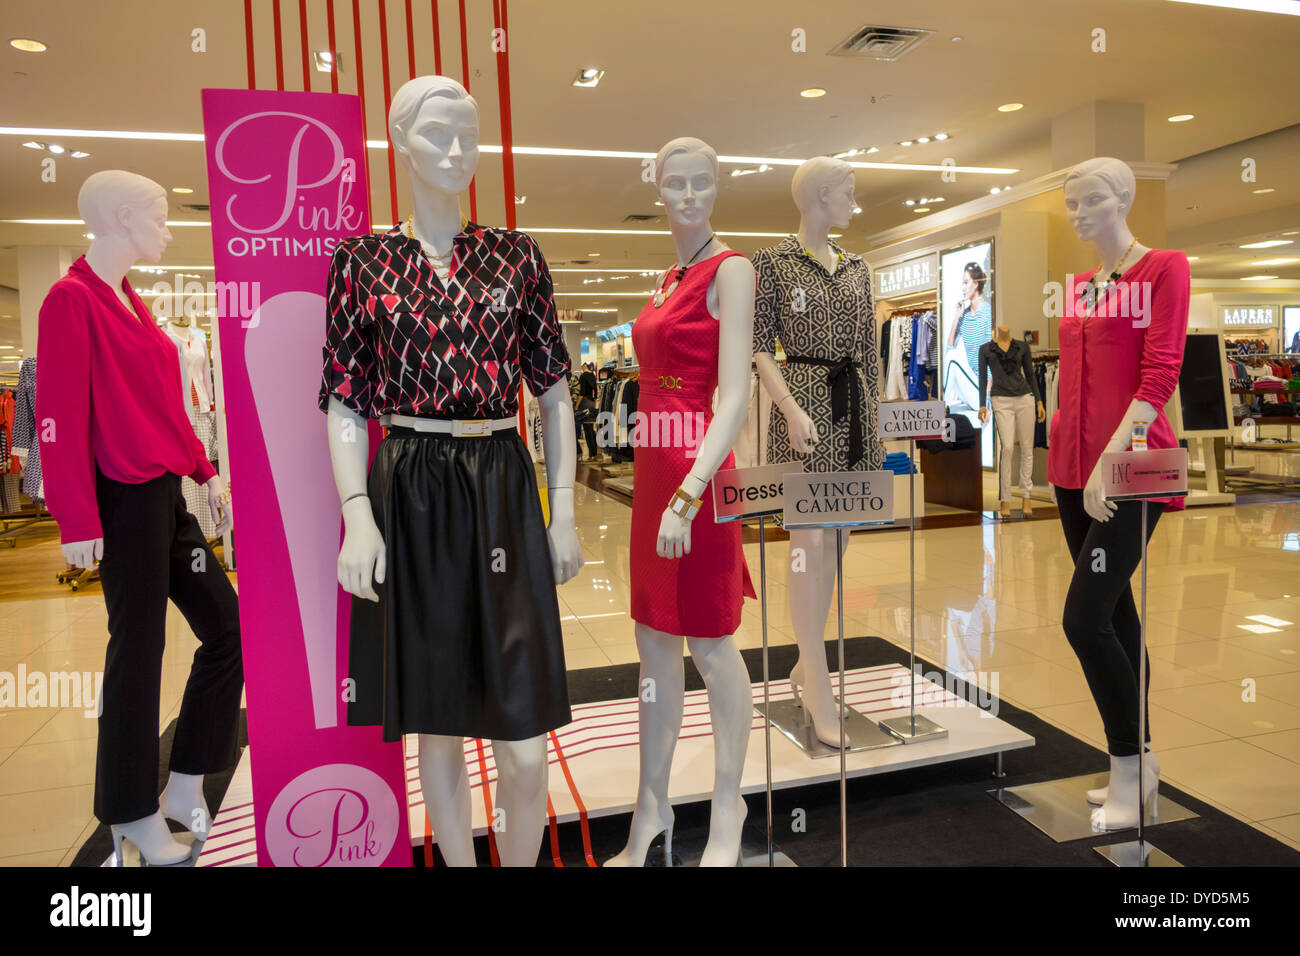 Clothing stores in orlando